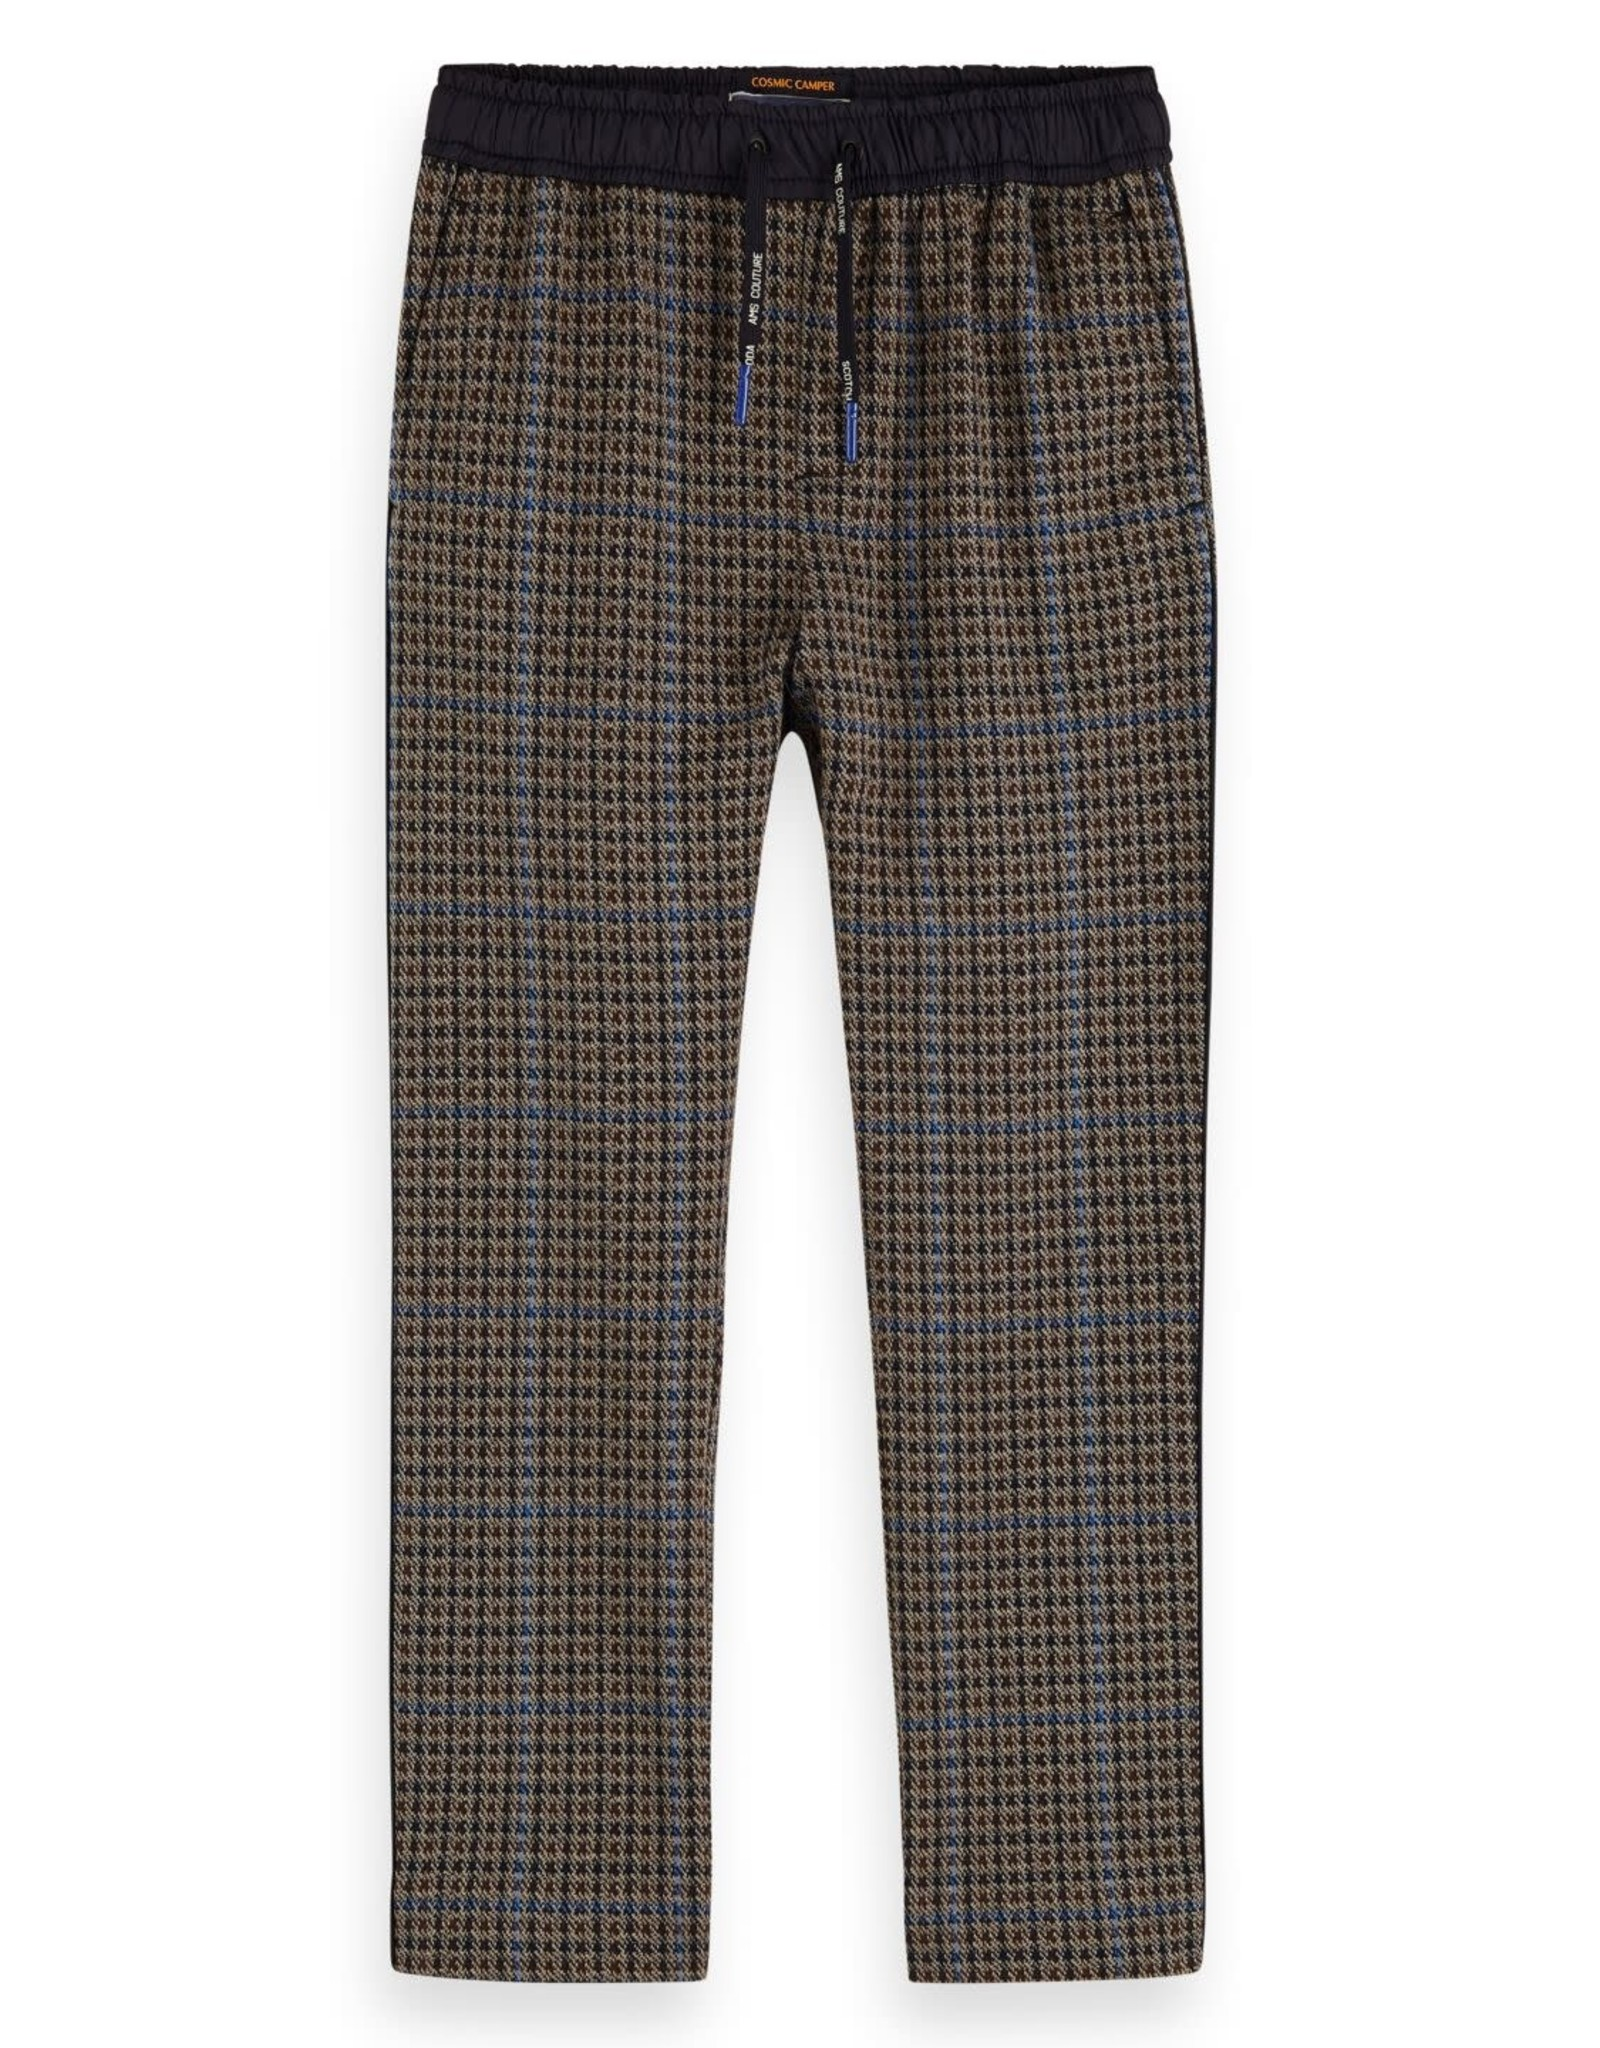 SCOTCH & SODA Yarn dyed pants in knitted quality 0218-Combo B